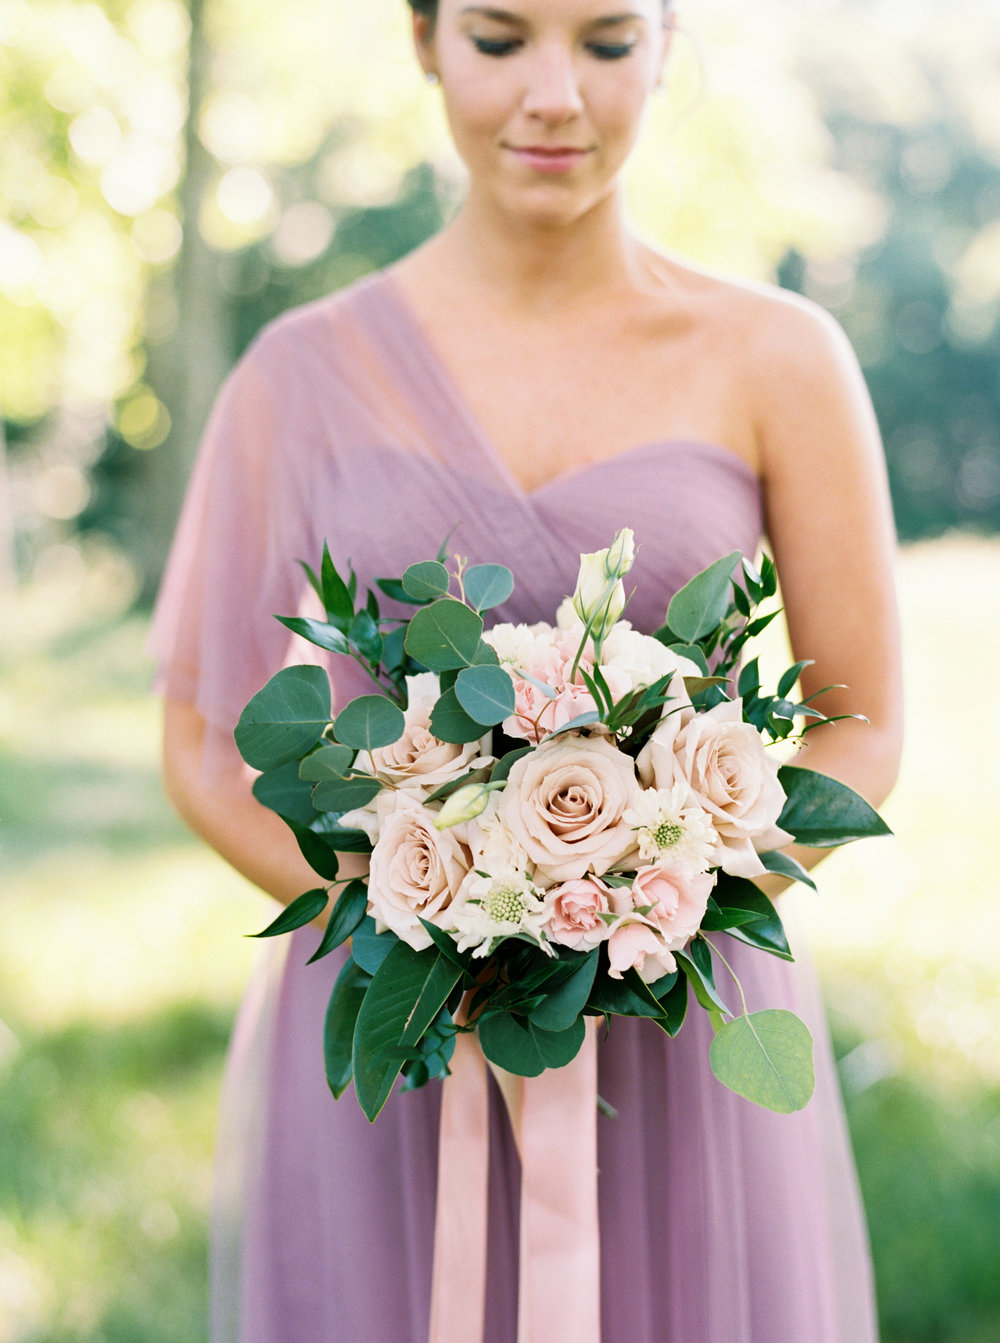 Bridesmaid Bouquet with Magnolia and Quicksand Roses